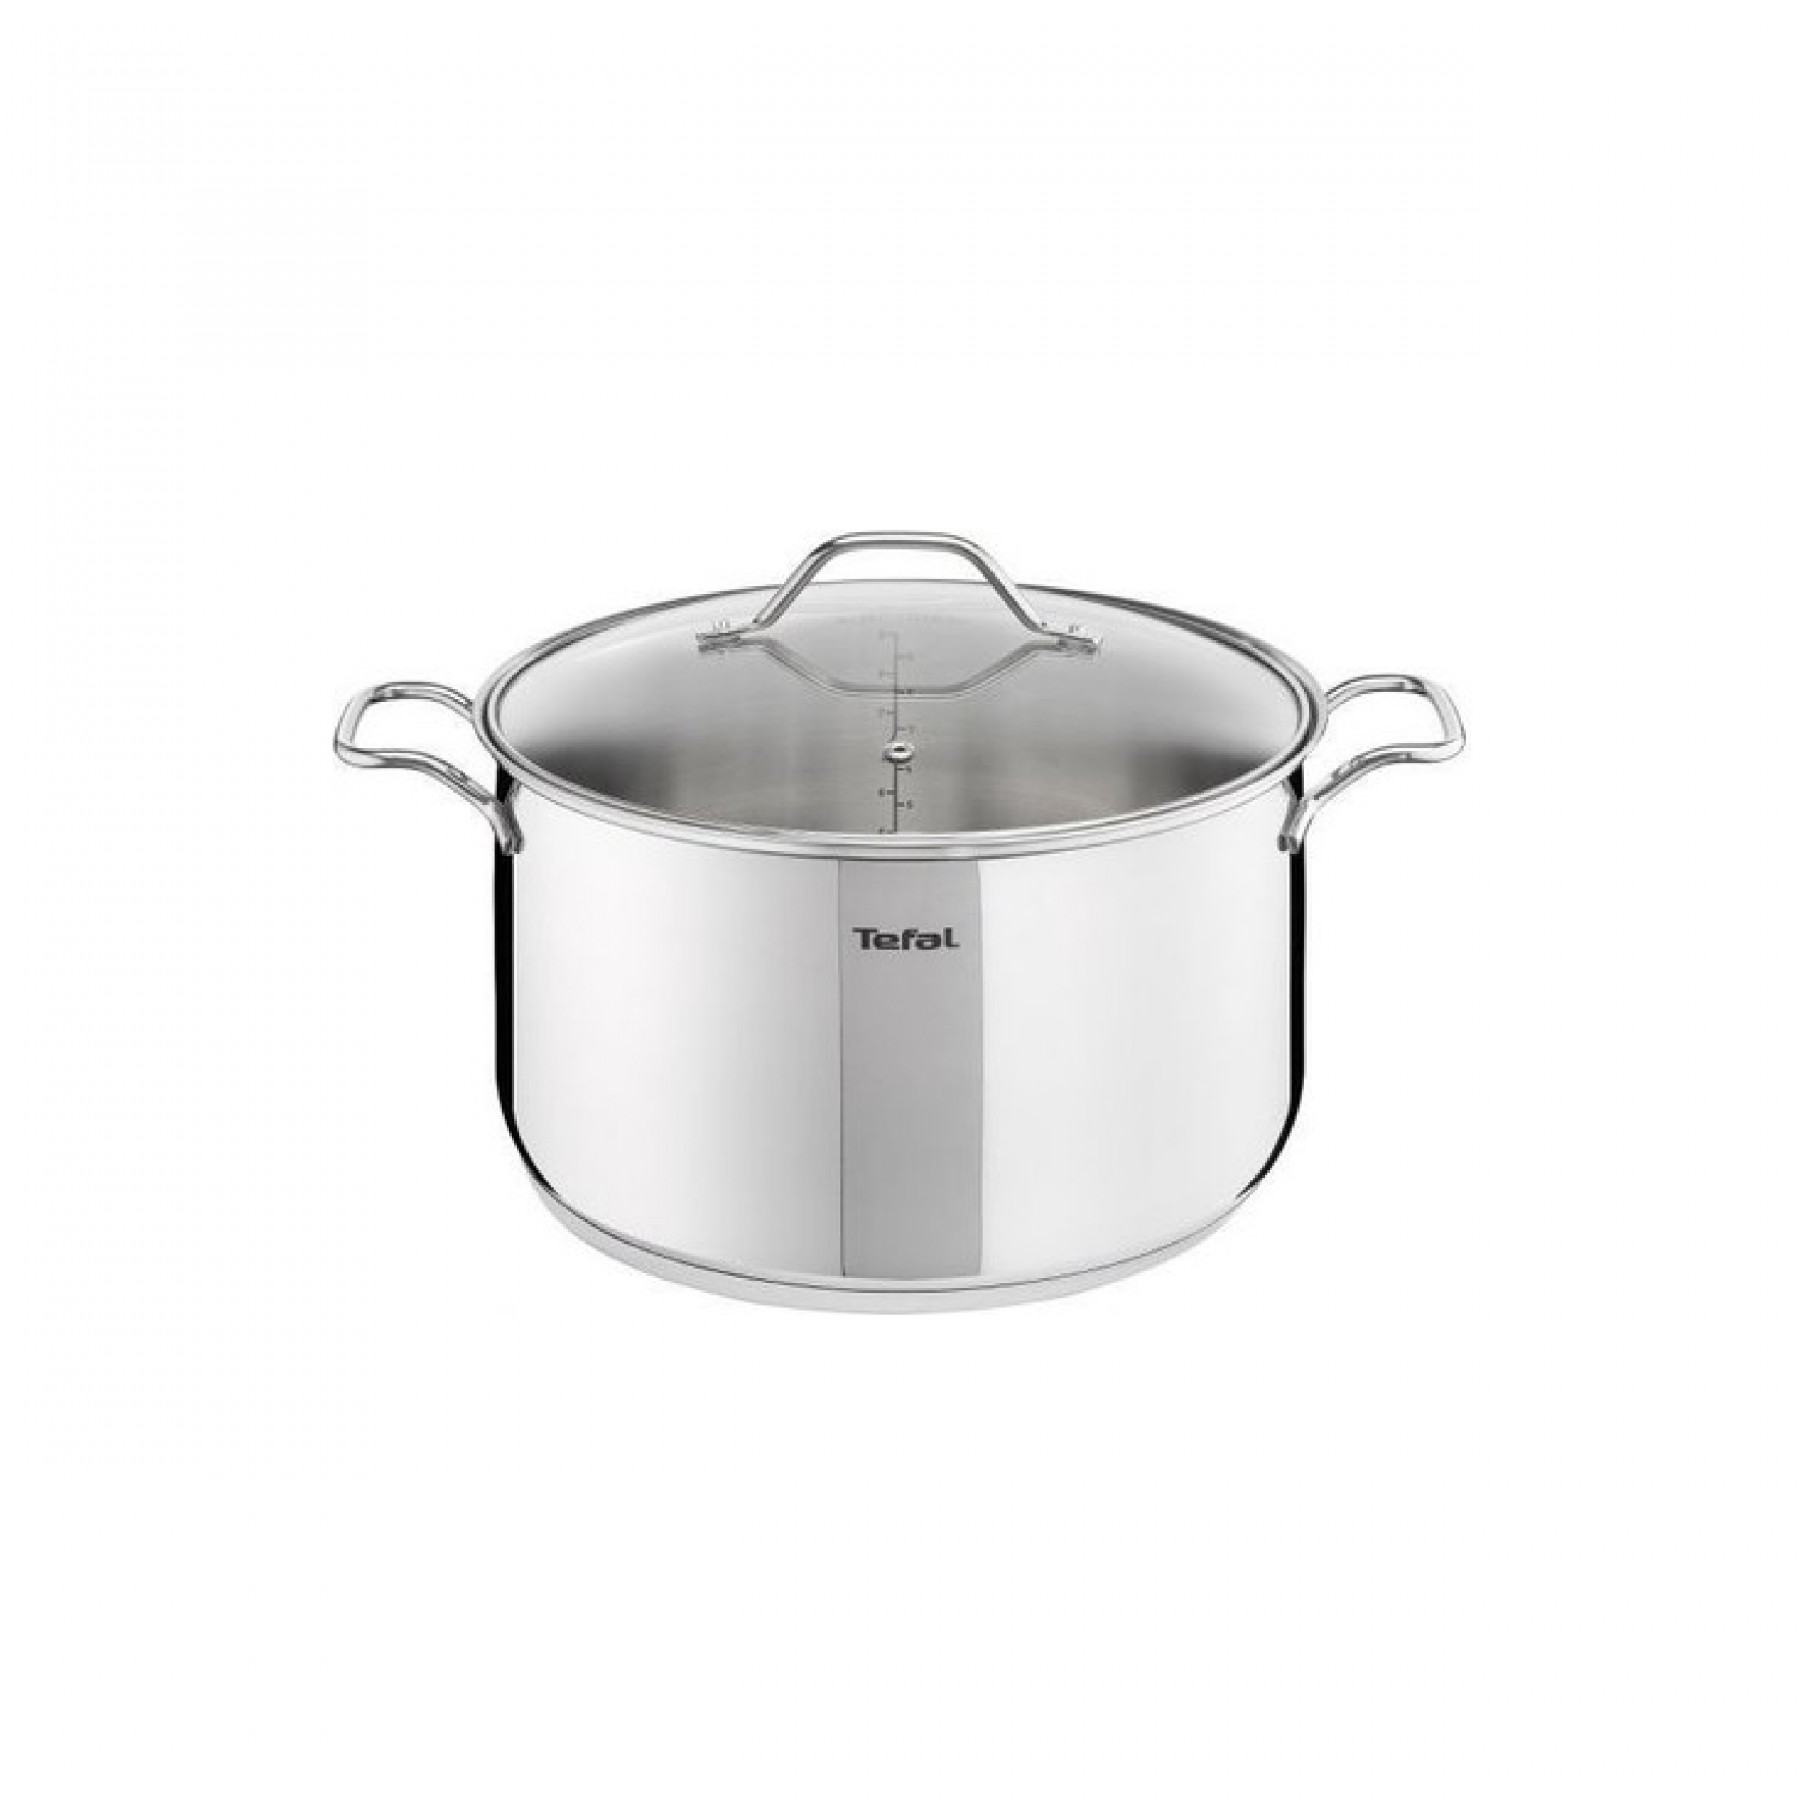 Tefal Intuition SS v2 Stewpot 24 with lid A7024644